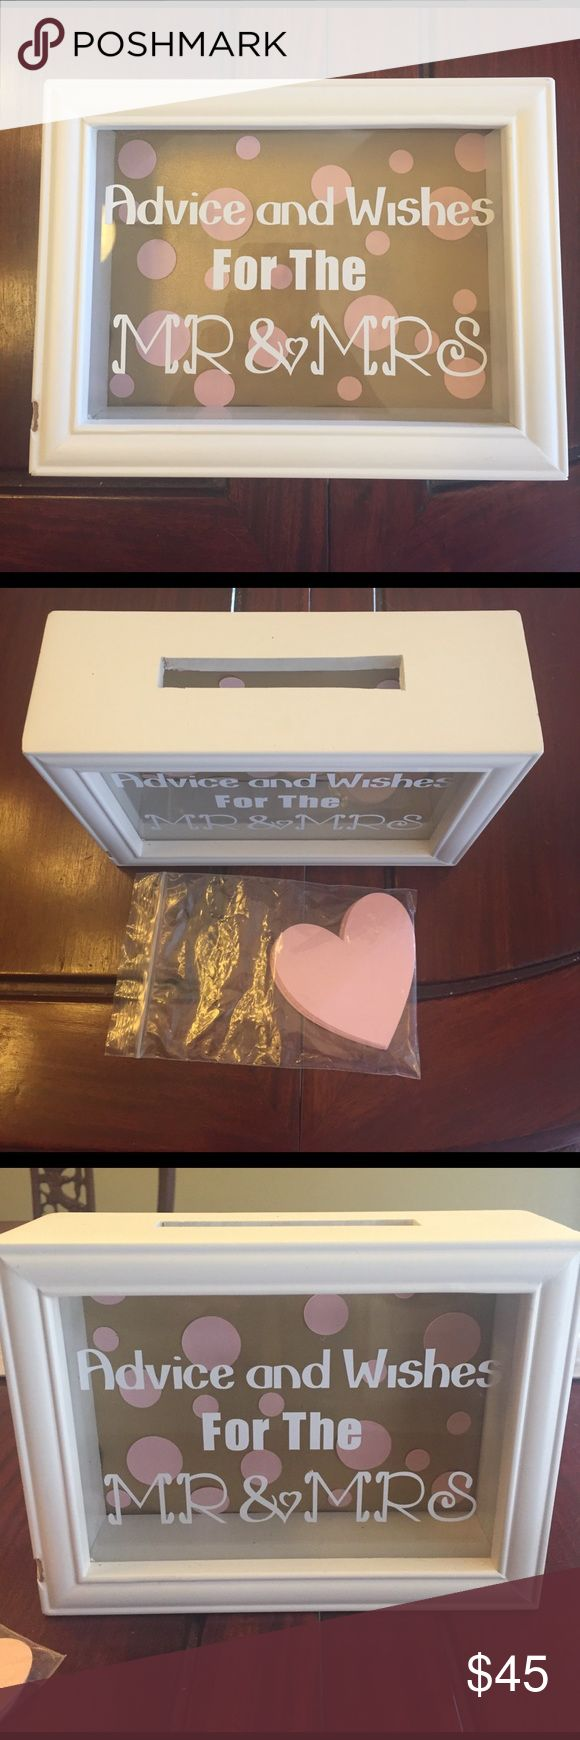 "Mr & Mrs advice box Only used once for my bridal shower! White shadow box hand made into a cute advice box. Background is gold with pink polka dots, and the window has white wording ""Advice and Wishes for the Mr & Mrs"". Comes with pink heart cut outs for guests to write advice on and insert into the slot. Other"